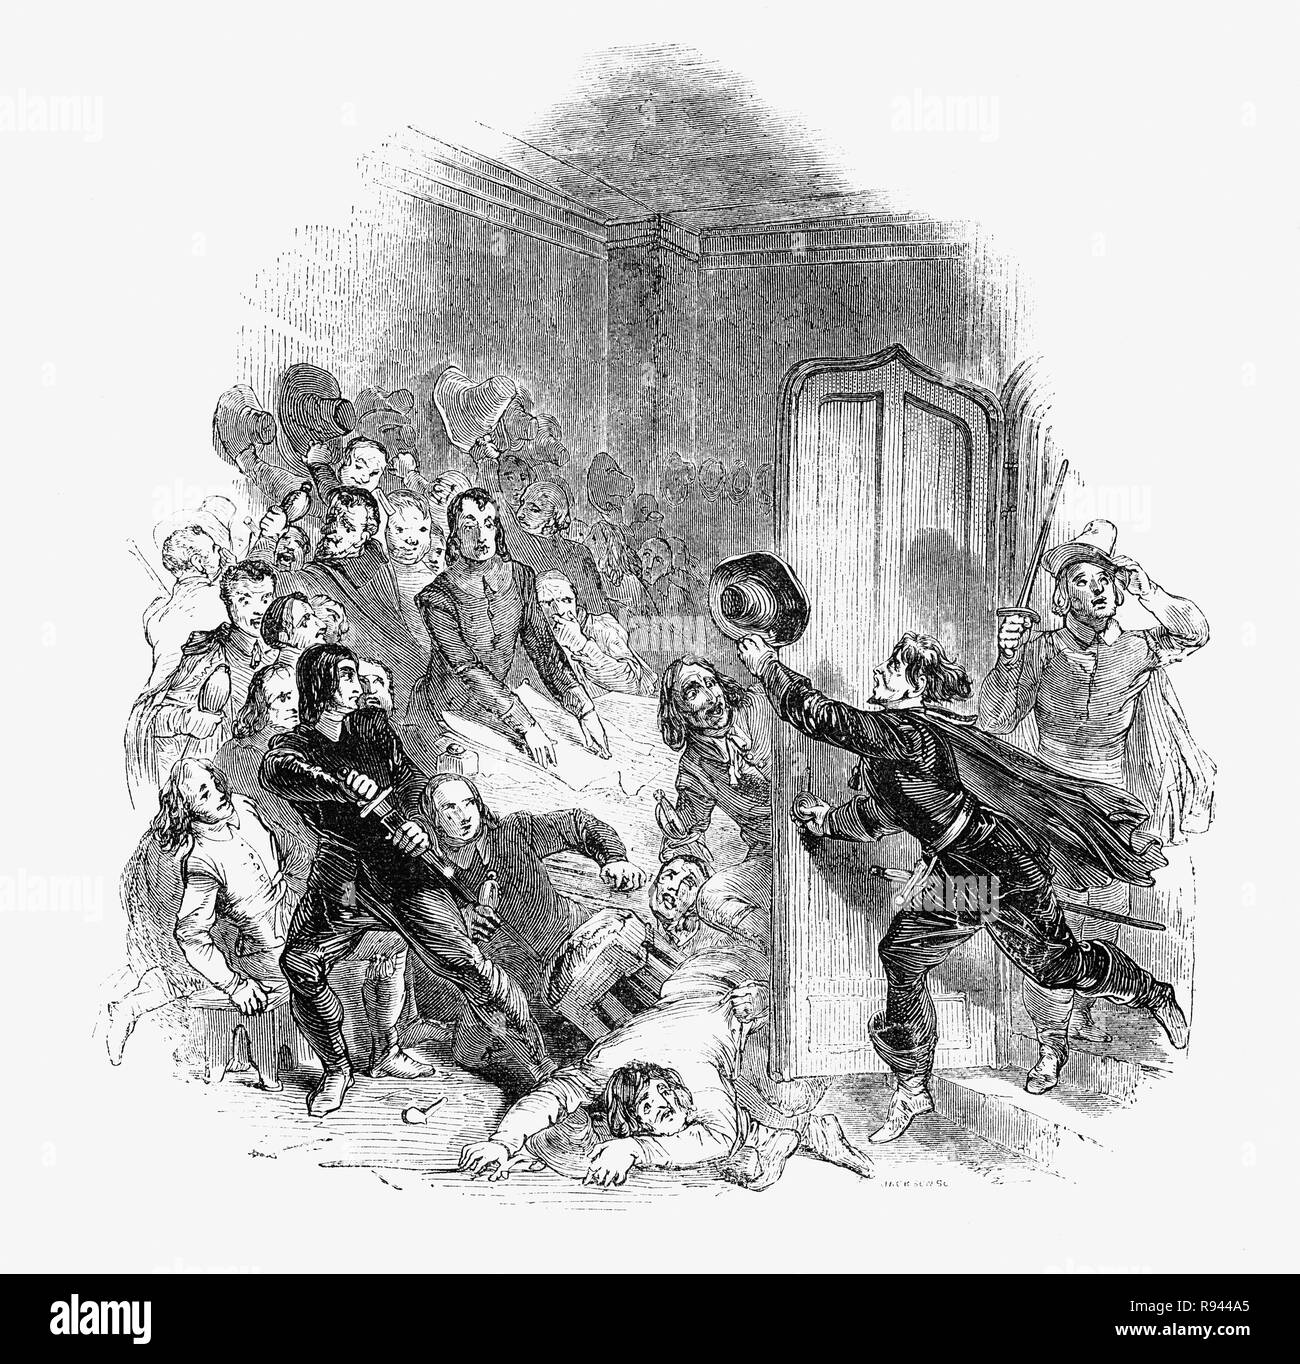 A scene from Hudibras, an English satirical polemic written by Samuel Butler(1613 – 1680), poet and satirist, mostly against Parliamenterians,Roundheads, Puritans, Presbyterians and other factions involved in the English Civil War of 1642-1651. Here a body of Independents in council interupted by a messenger with intelligence about the state of public opinion for the restoration (of King Charles II) - Stock Image